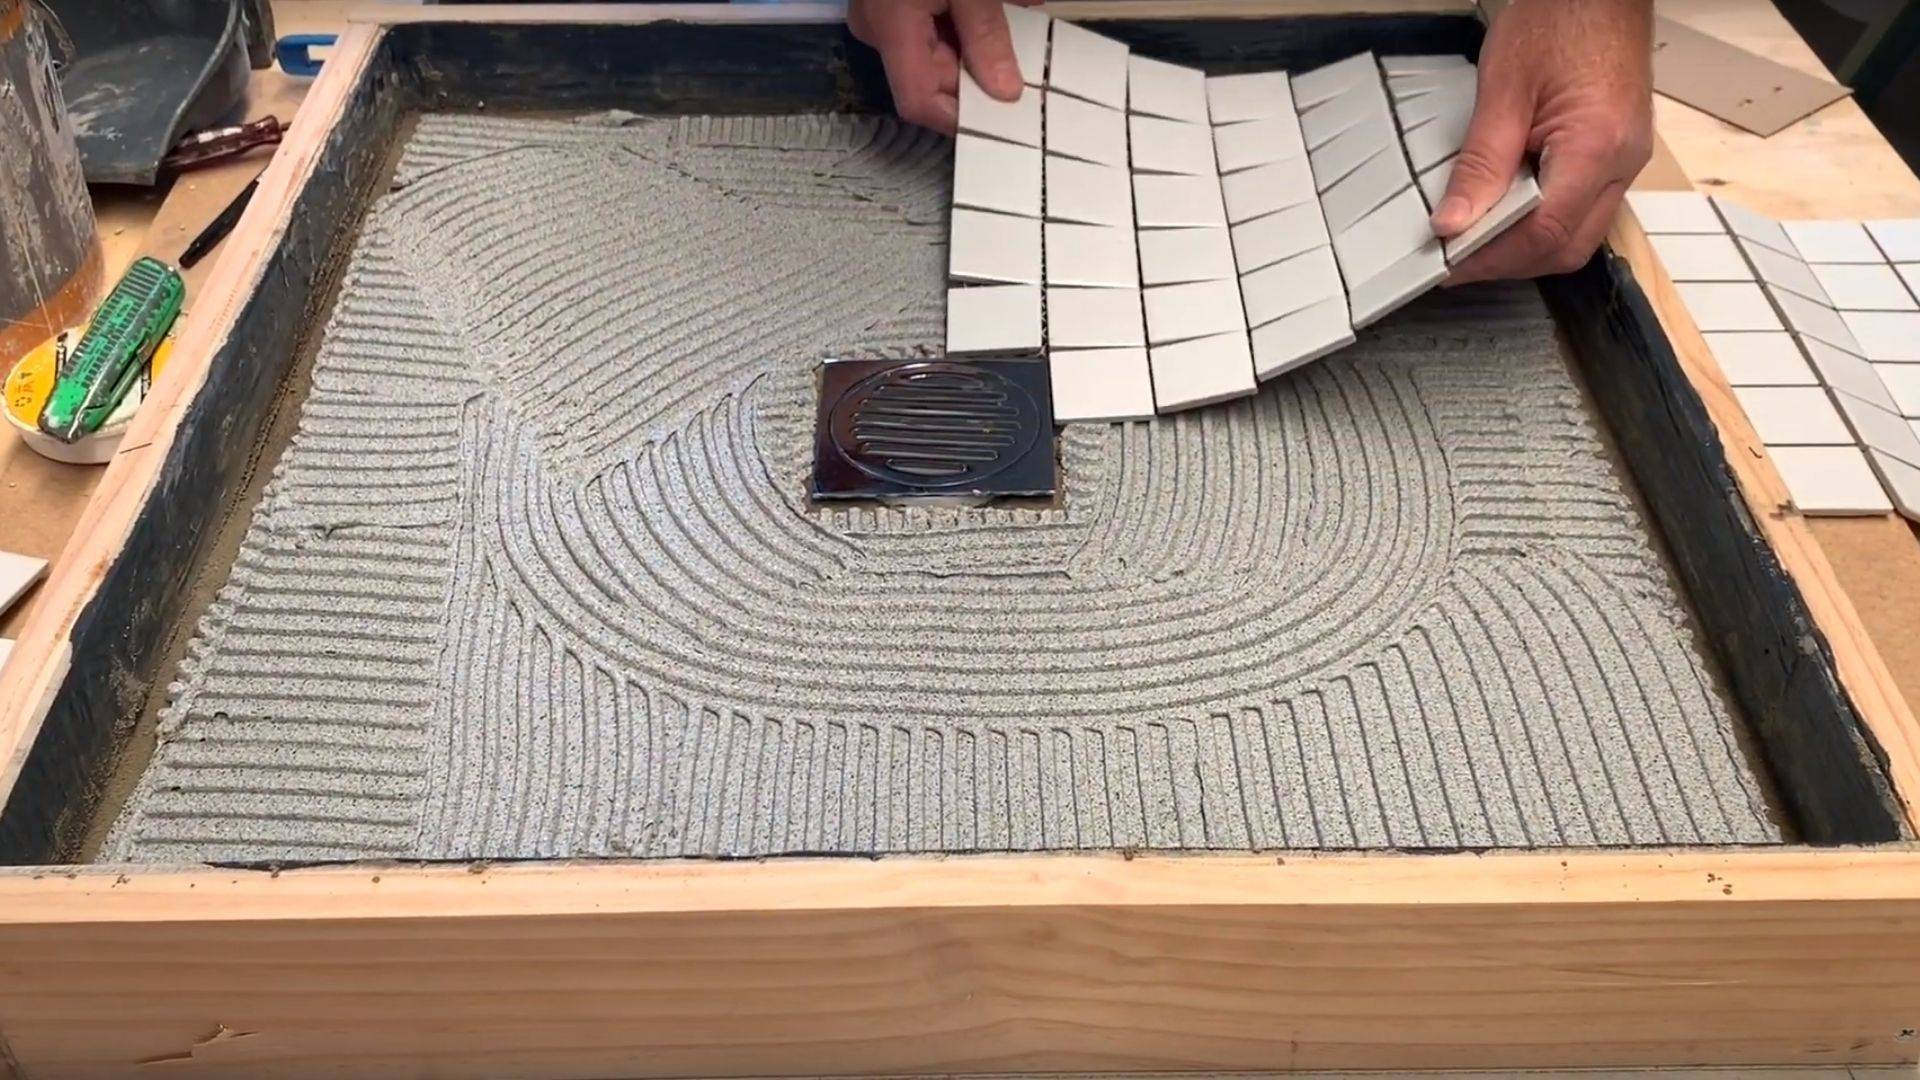 Tiling and grouting to a wondercap puddle flange kit